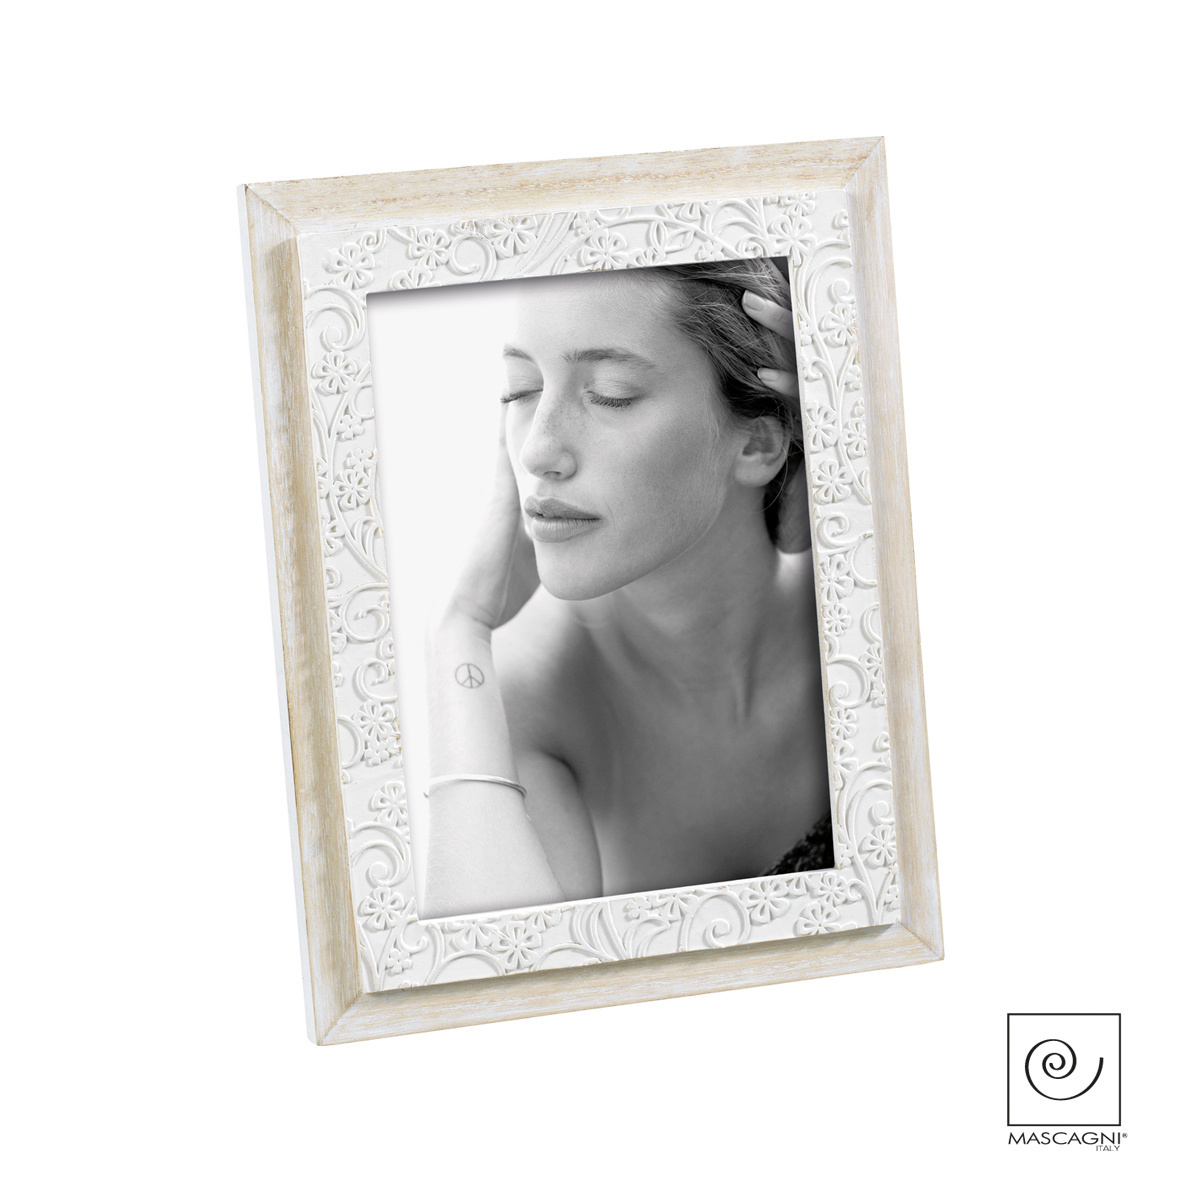 Art Mascagni A836 PHOTO FRAME 13X18